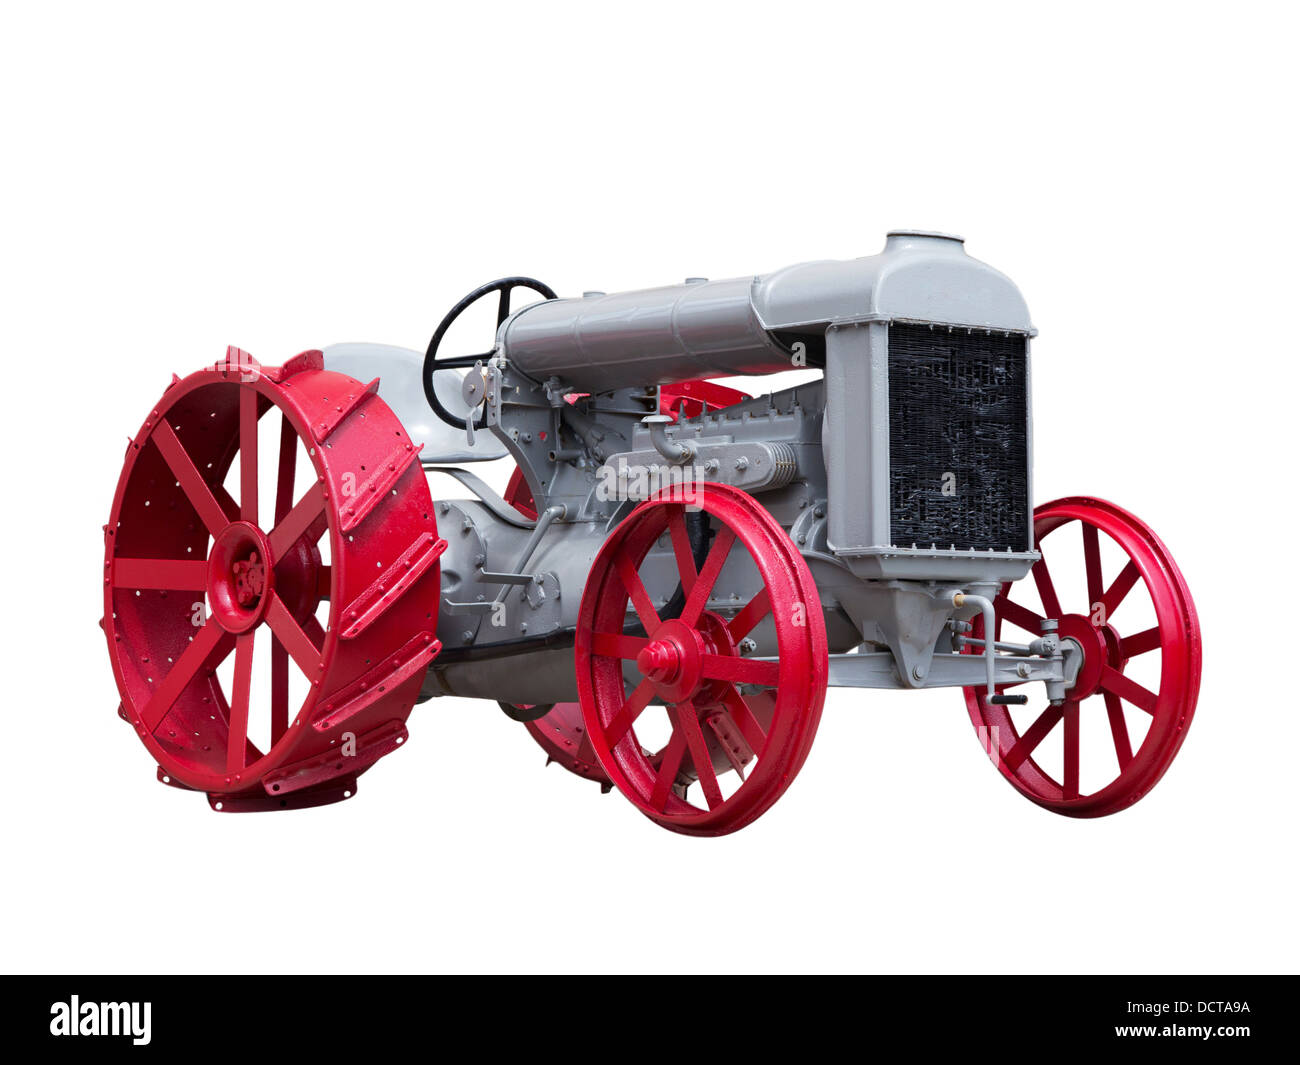 Collectible antique toy model tractor - Stock Image